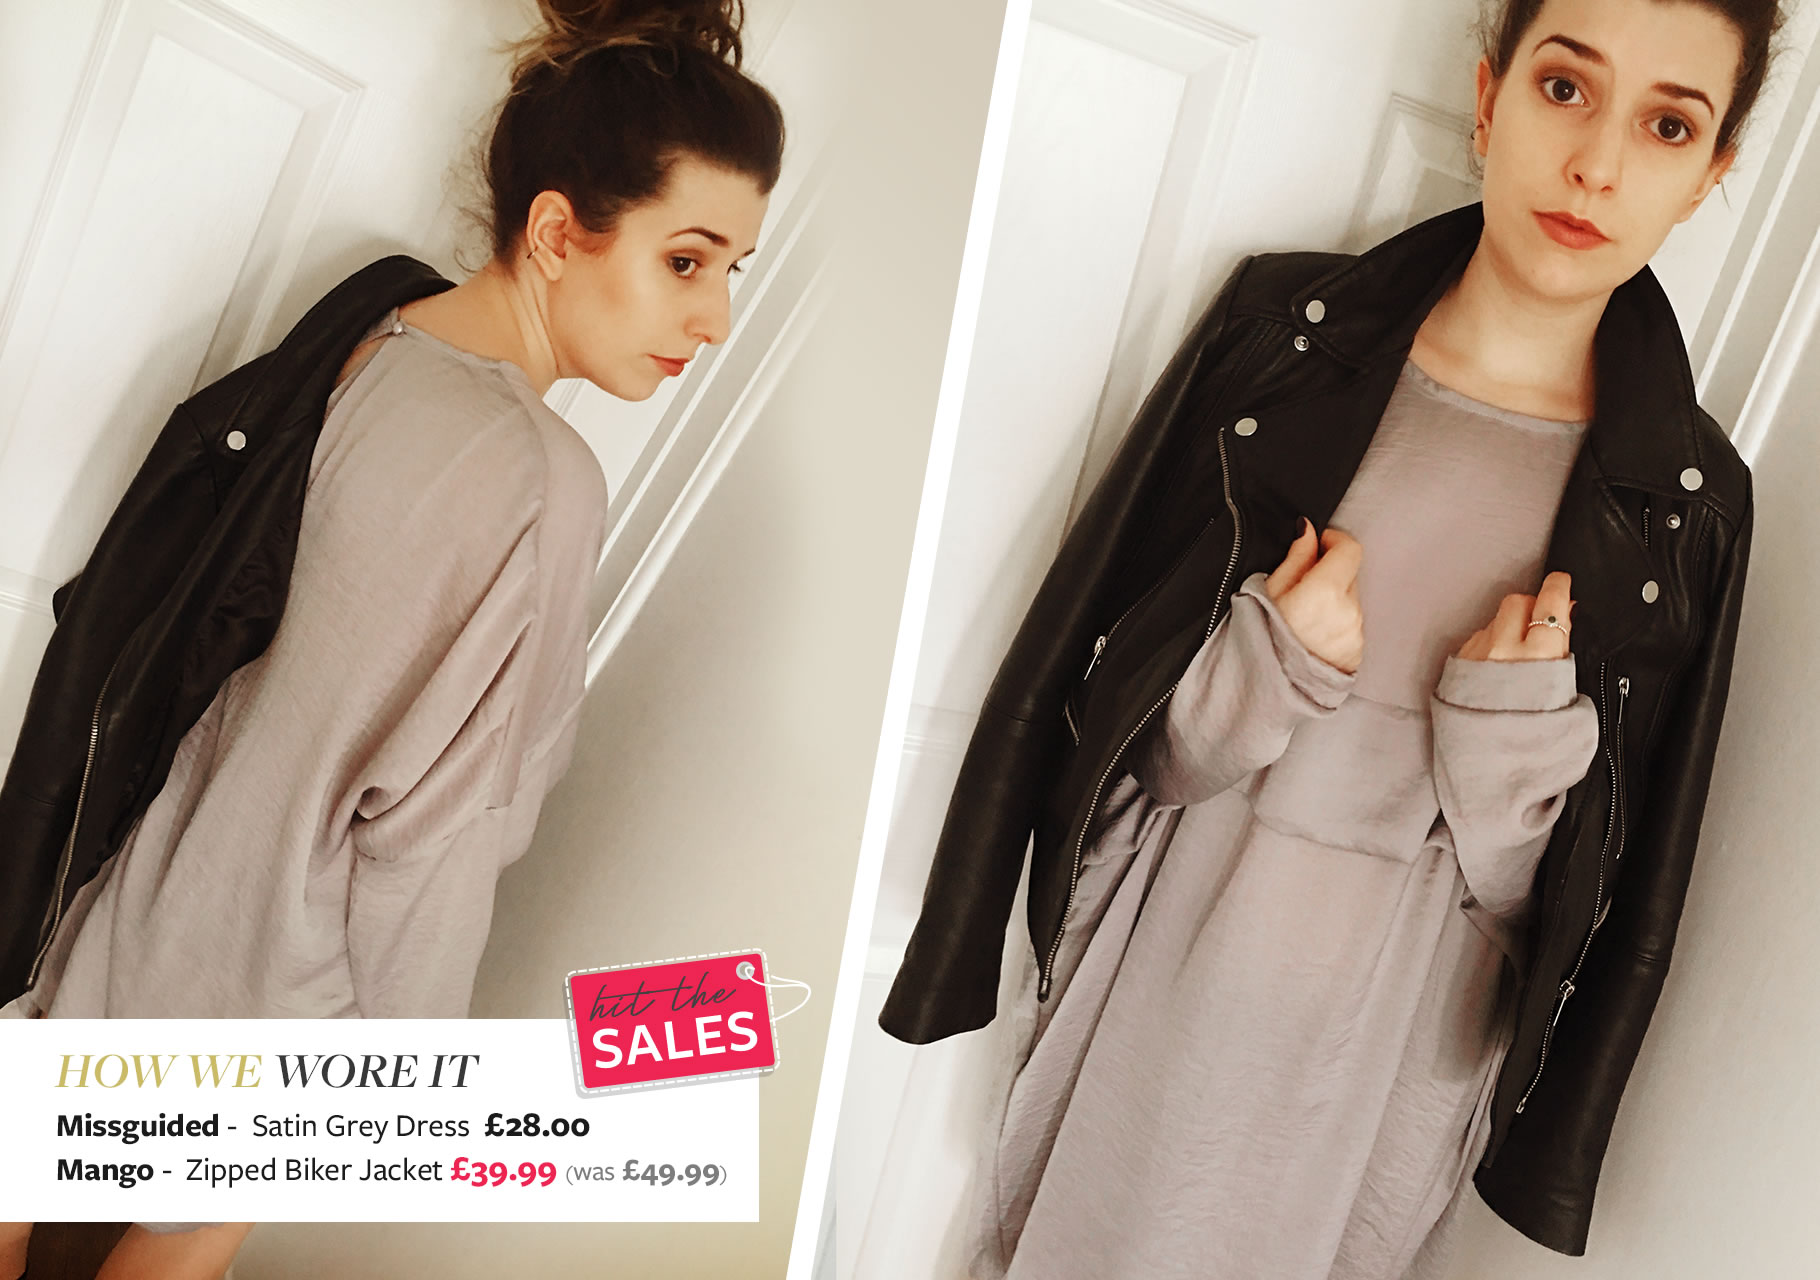 Emilie wears Missguided- Satin Grey Dress